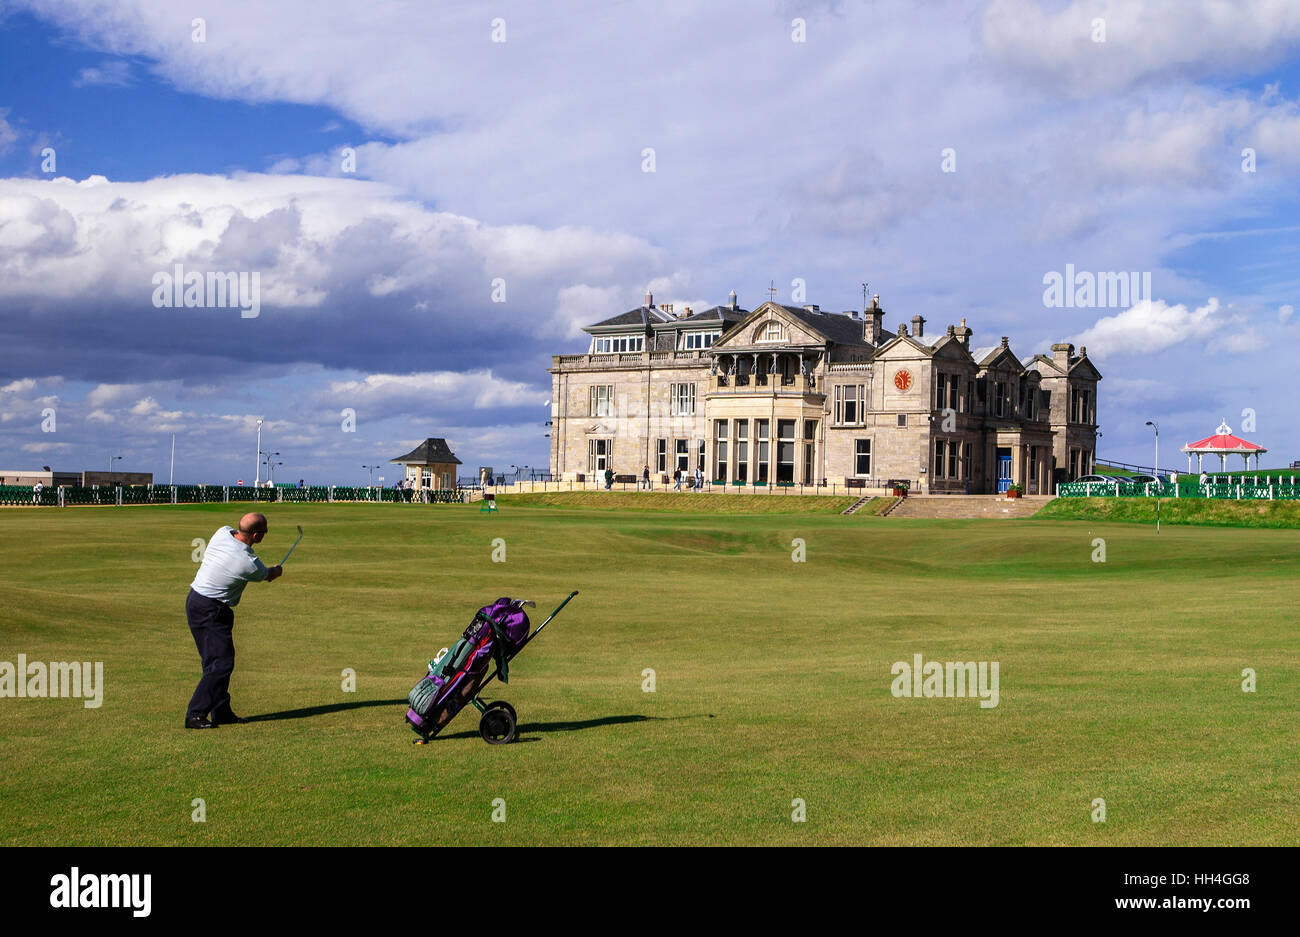 The 18th fairway and the Royal and Ancient clubhouse at St. Andrews golf course. Fife Scotland. 2003 - Stock Image